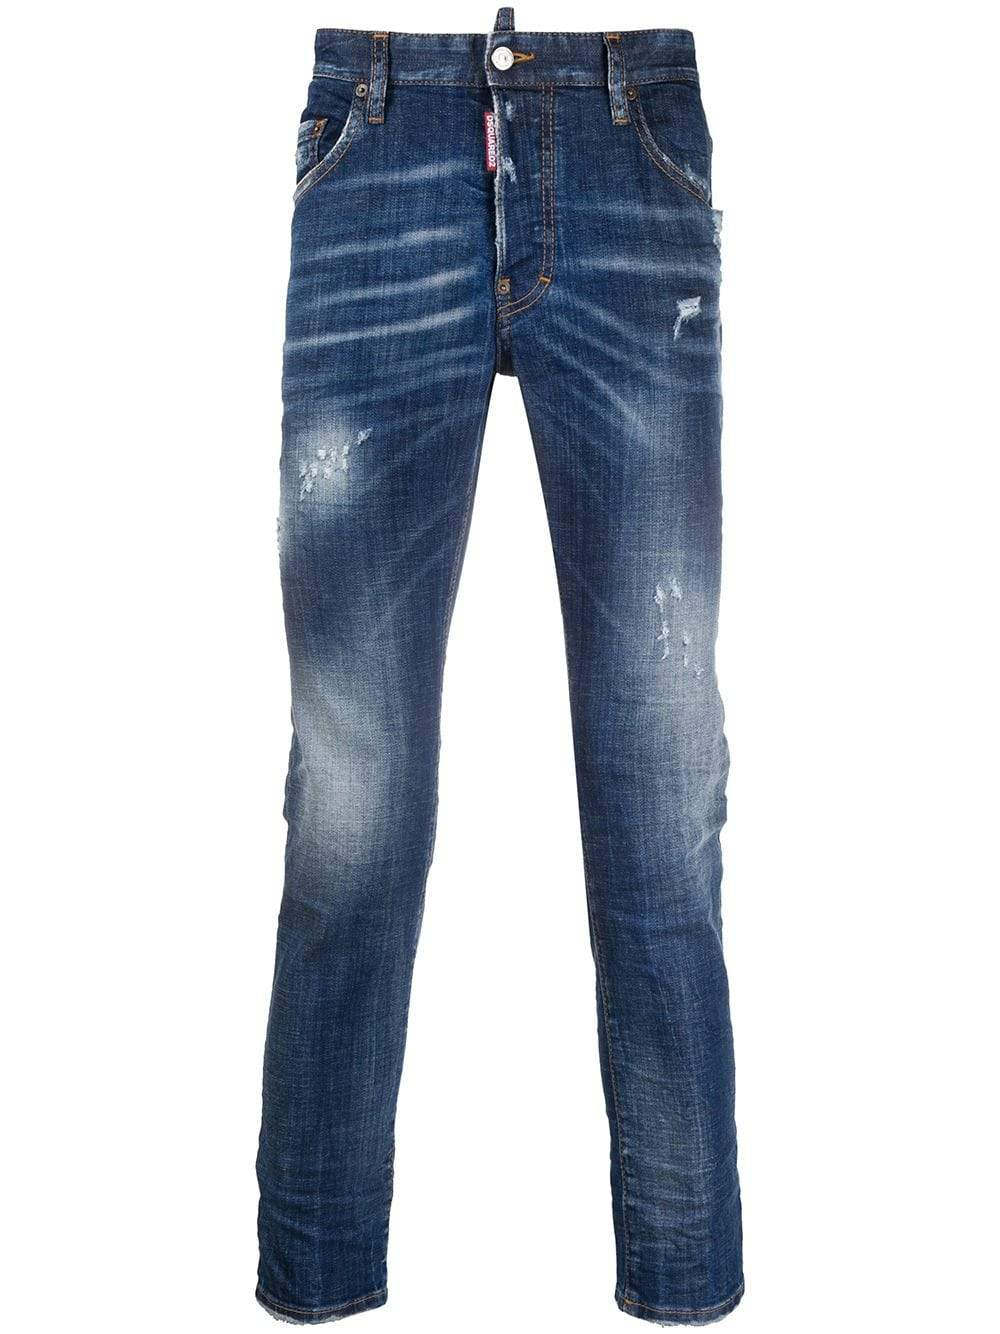 DSQUARED2 Slim Fit High Waist Jeans